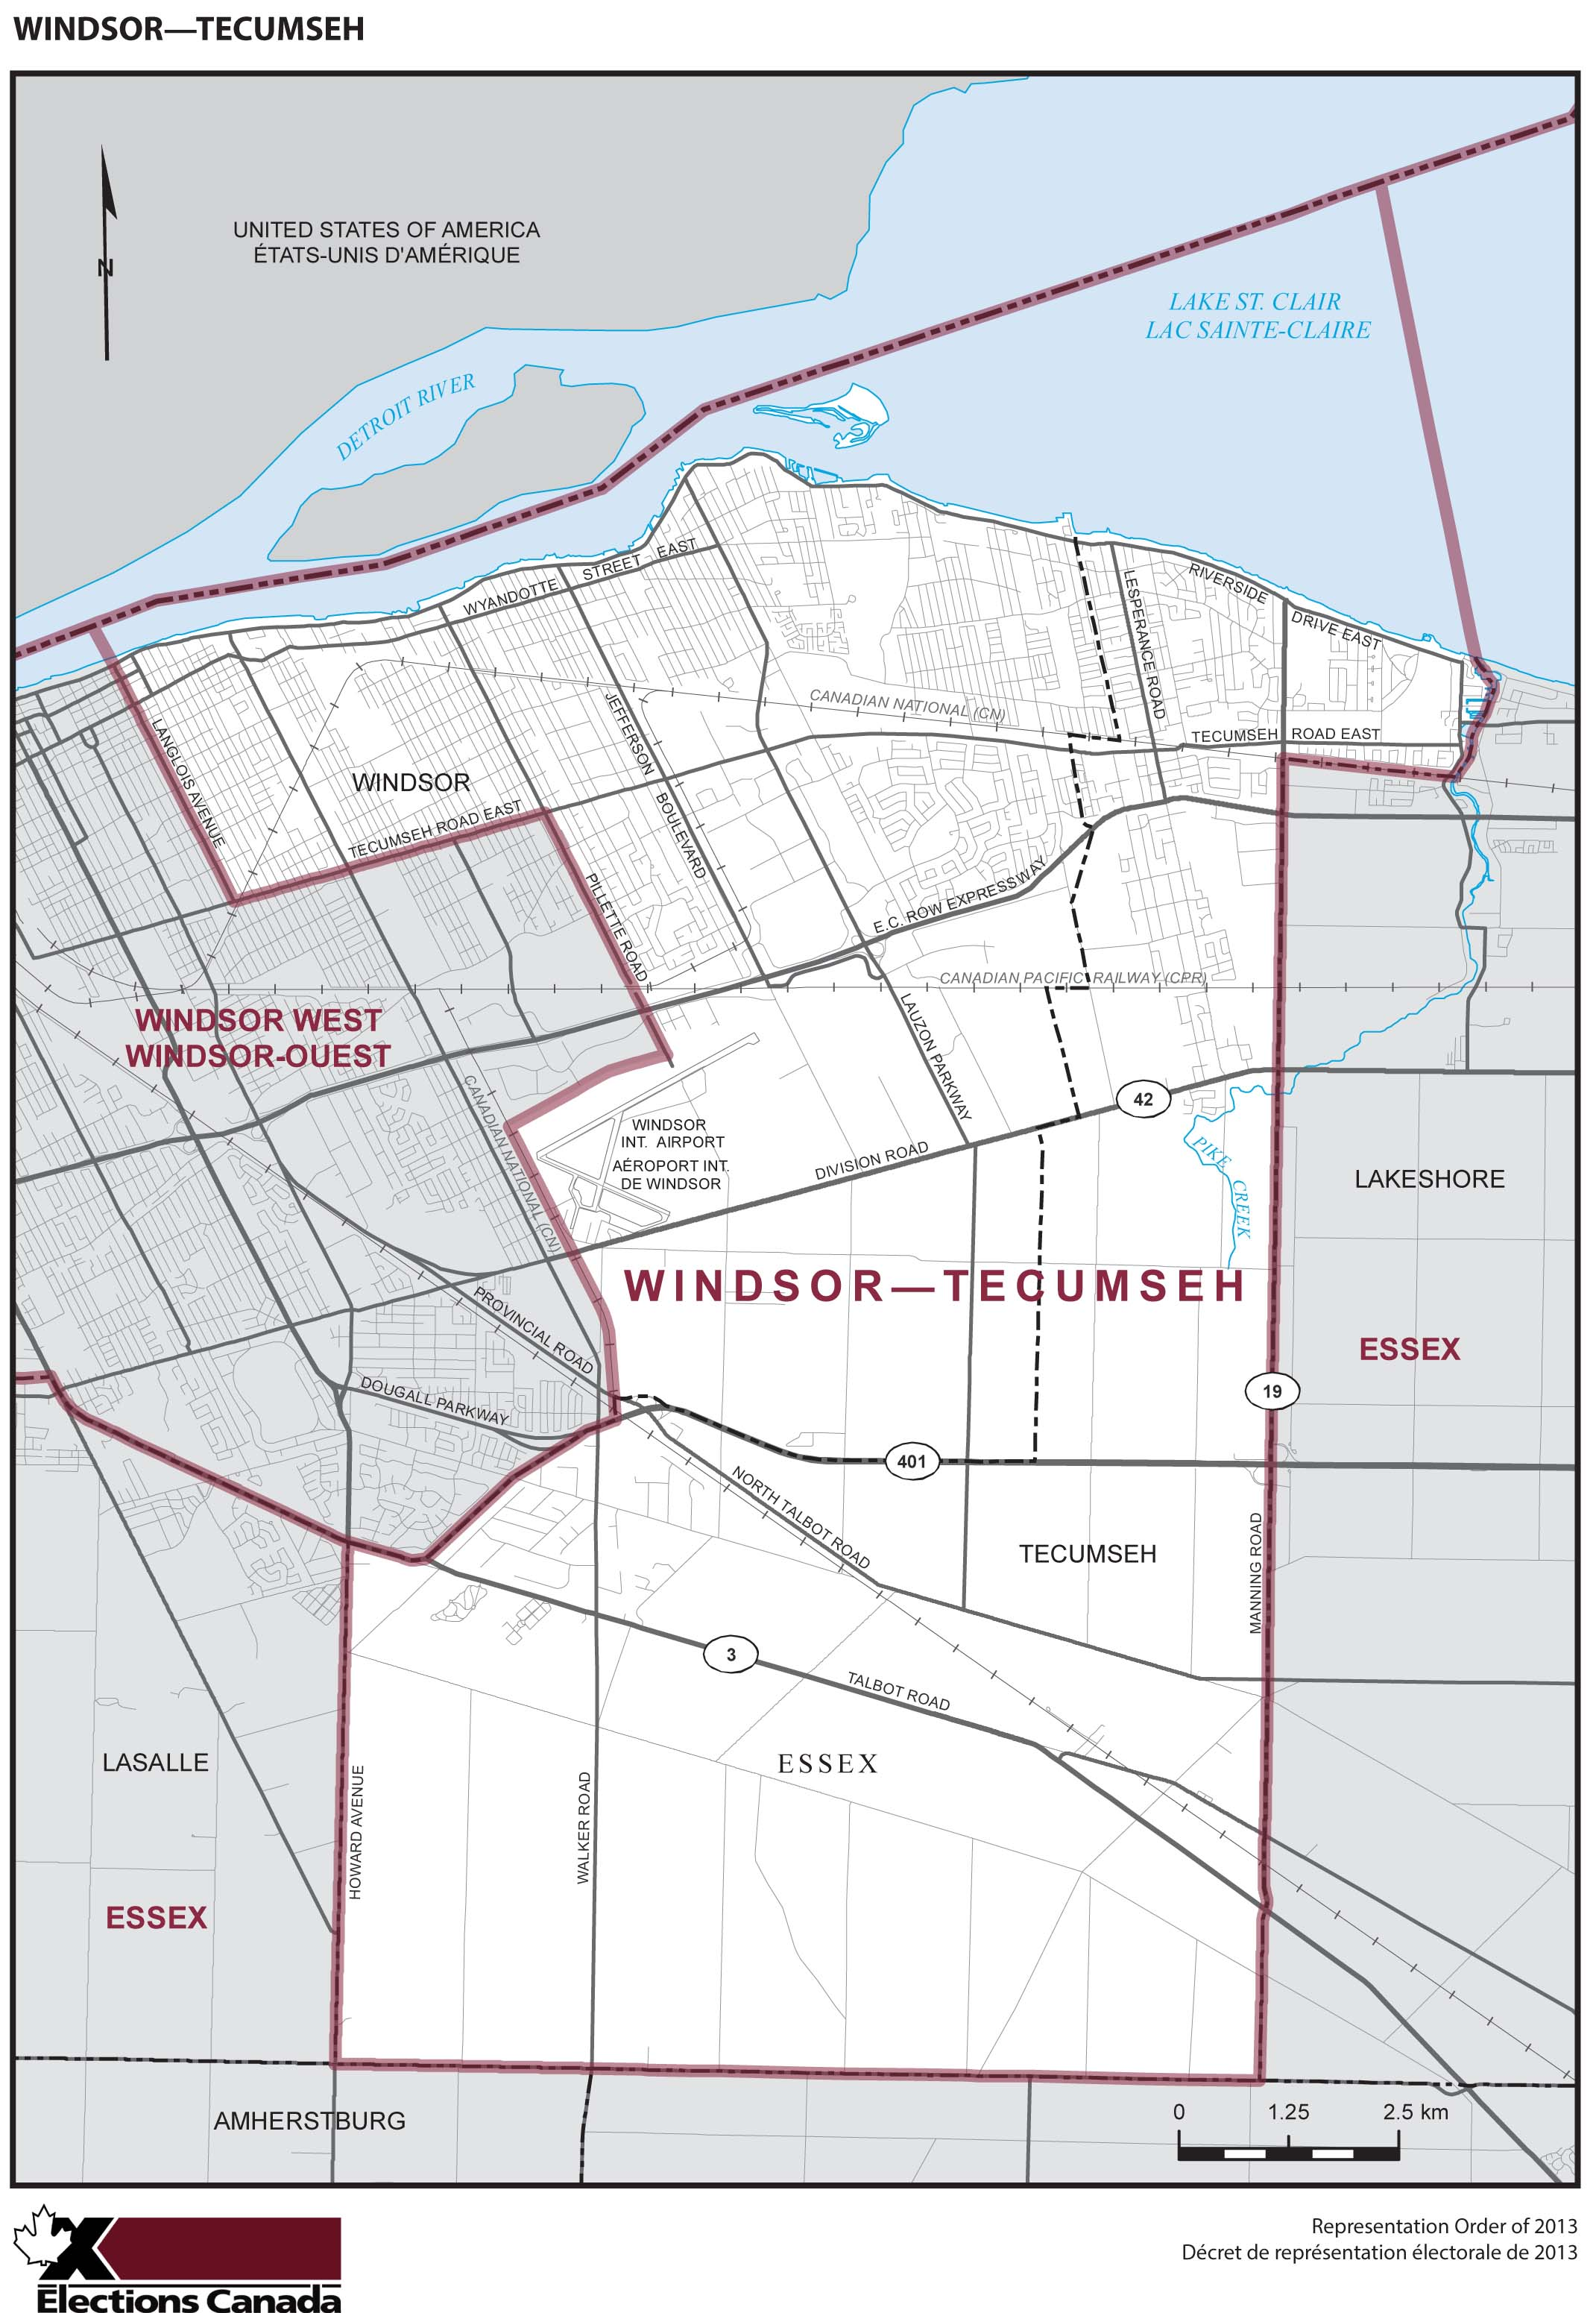 Map: Windsor--Tecumseh, Federal electoral district, 2013 Representation Order (in white), Ontario